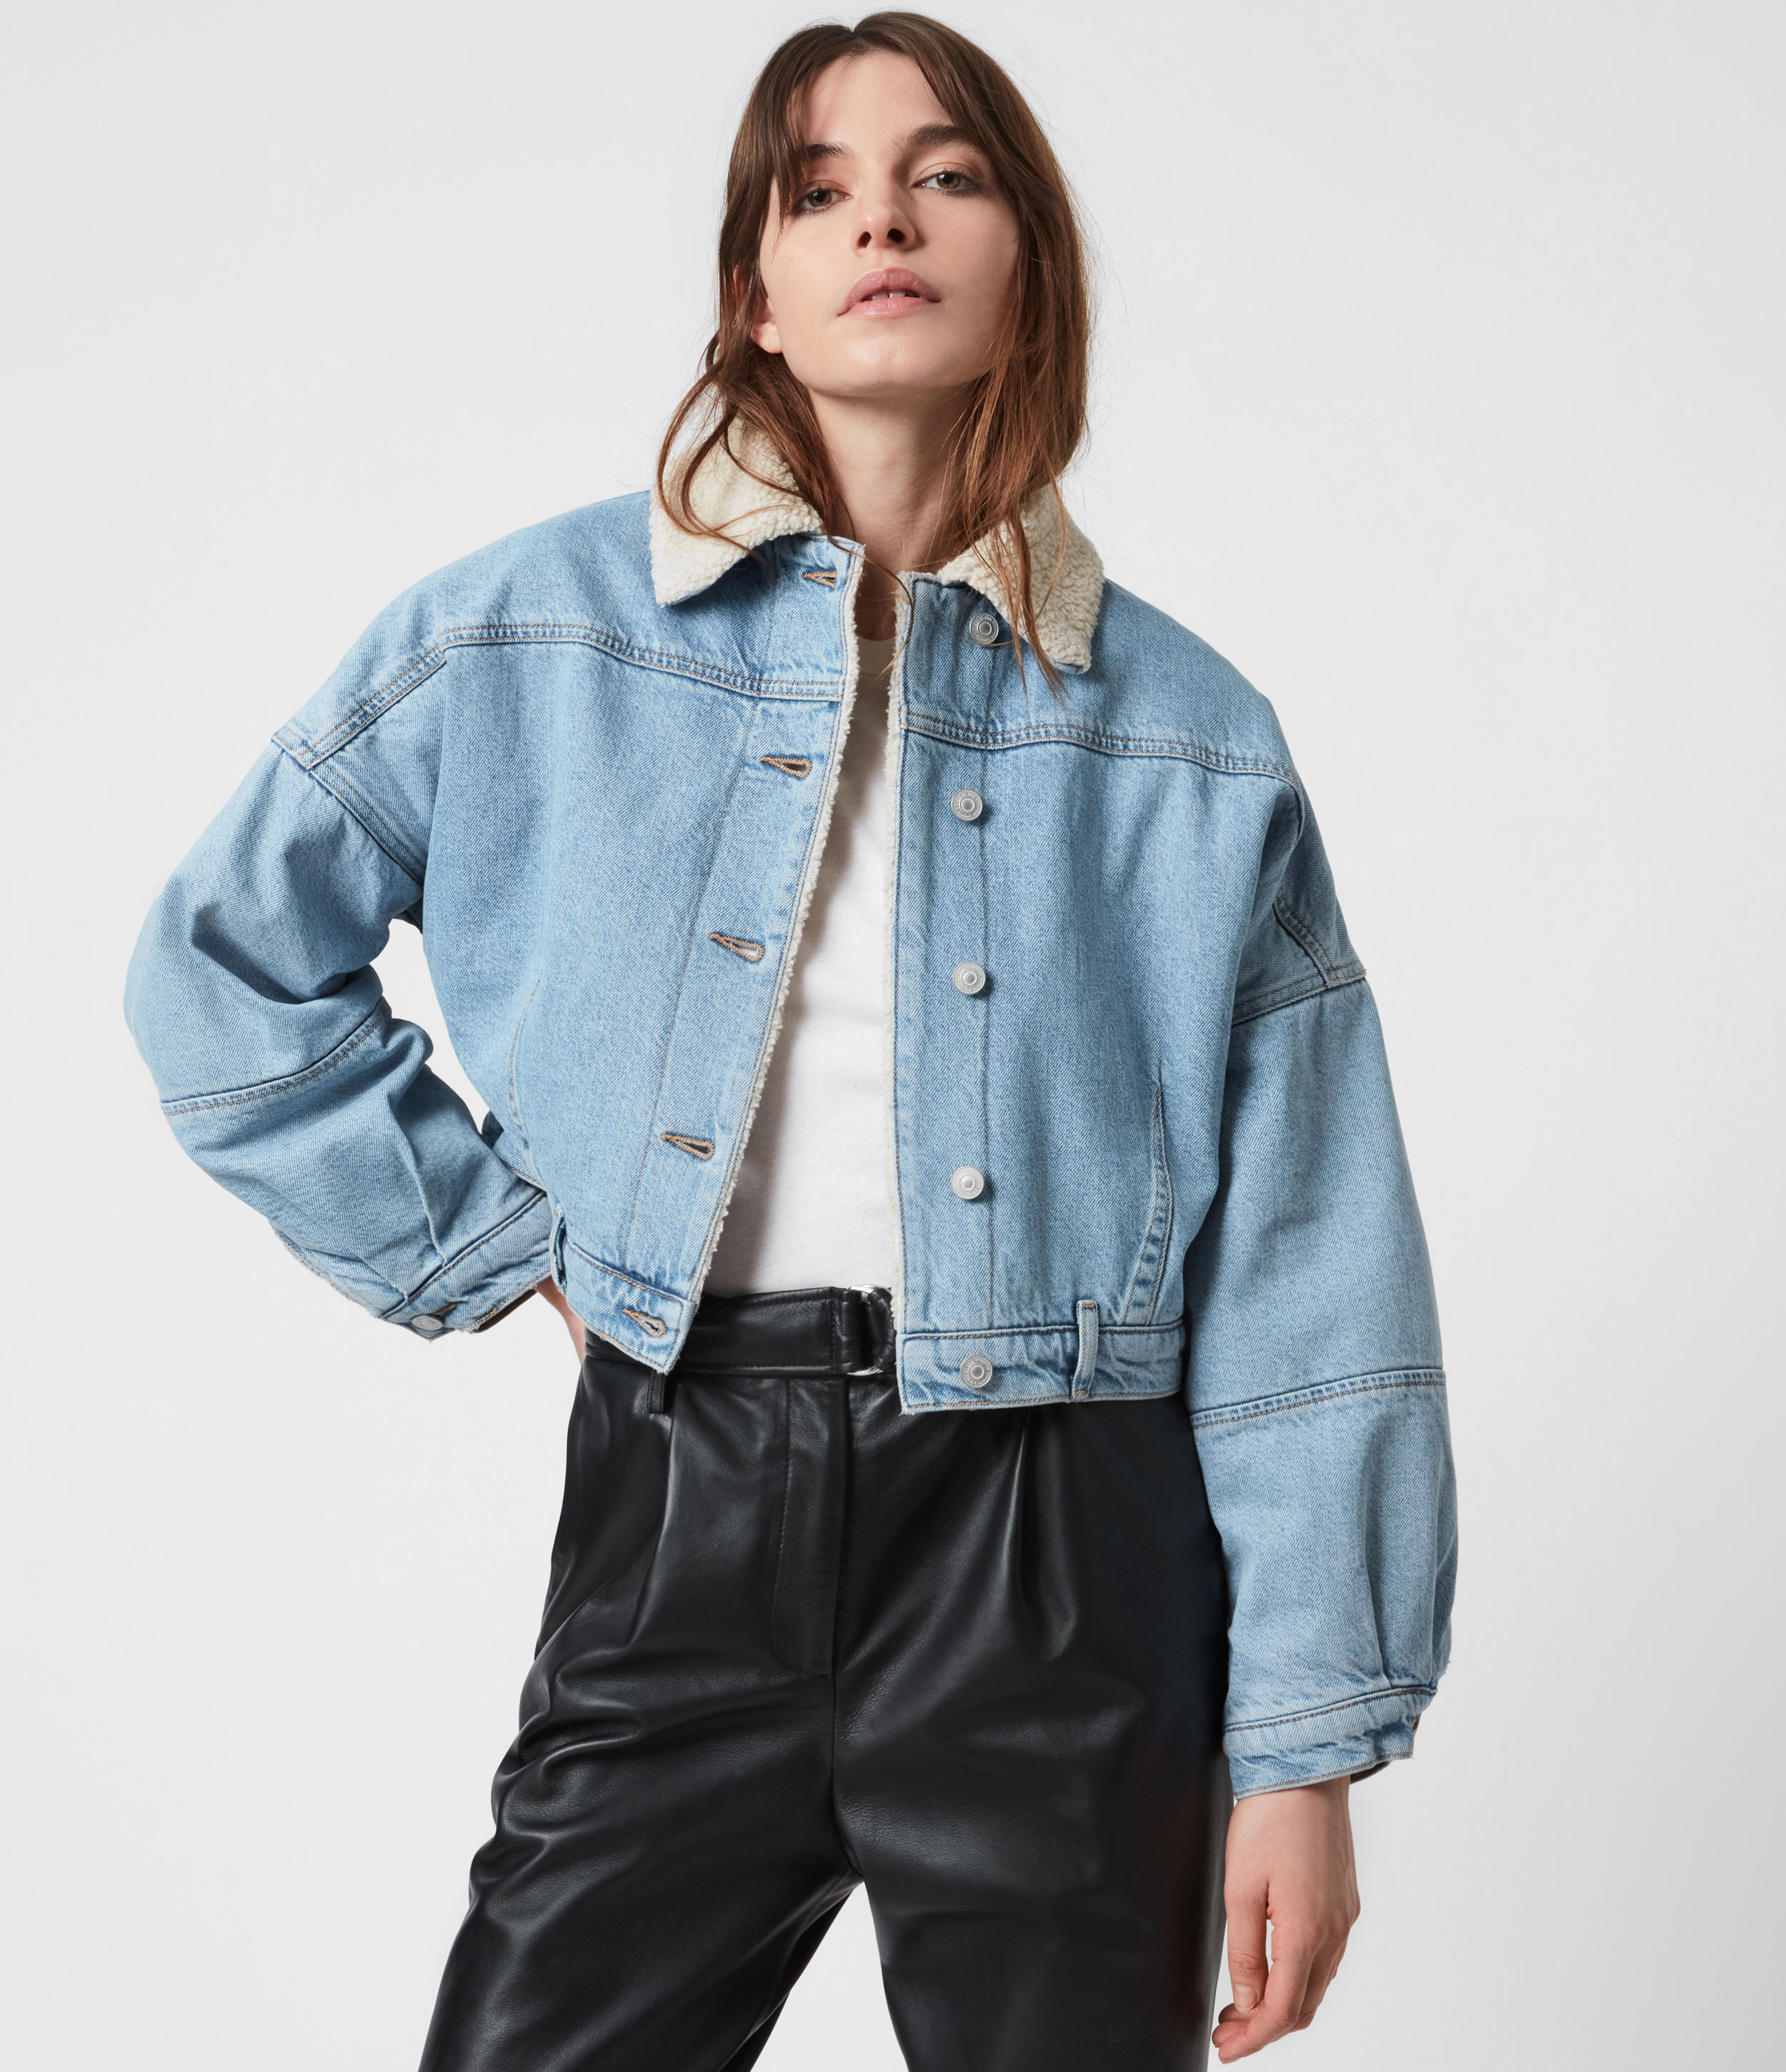 AllSaints Womens Cropped Sherpa Lined Denim Jacket, Light Indigo, Size: 10